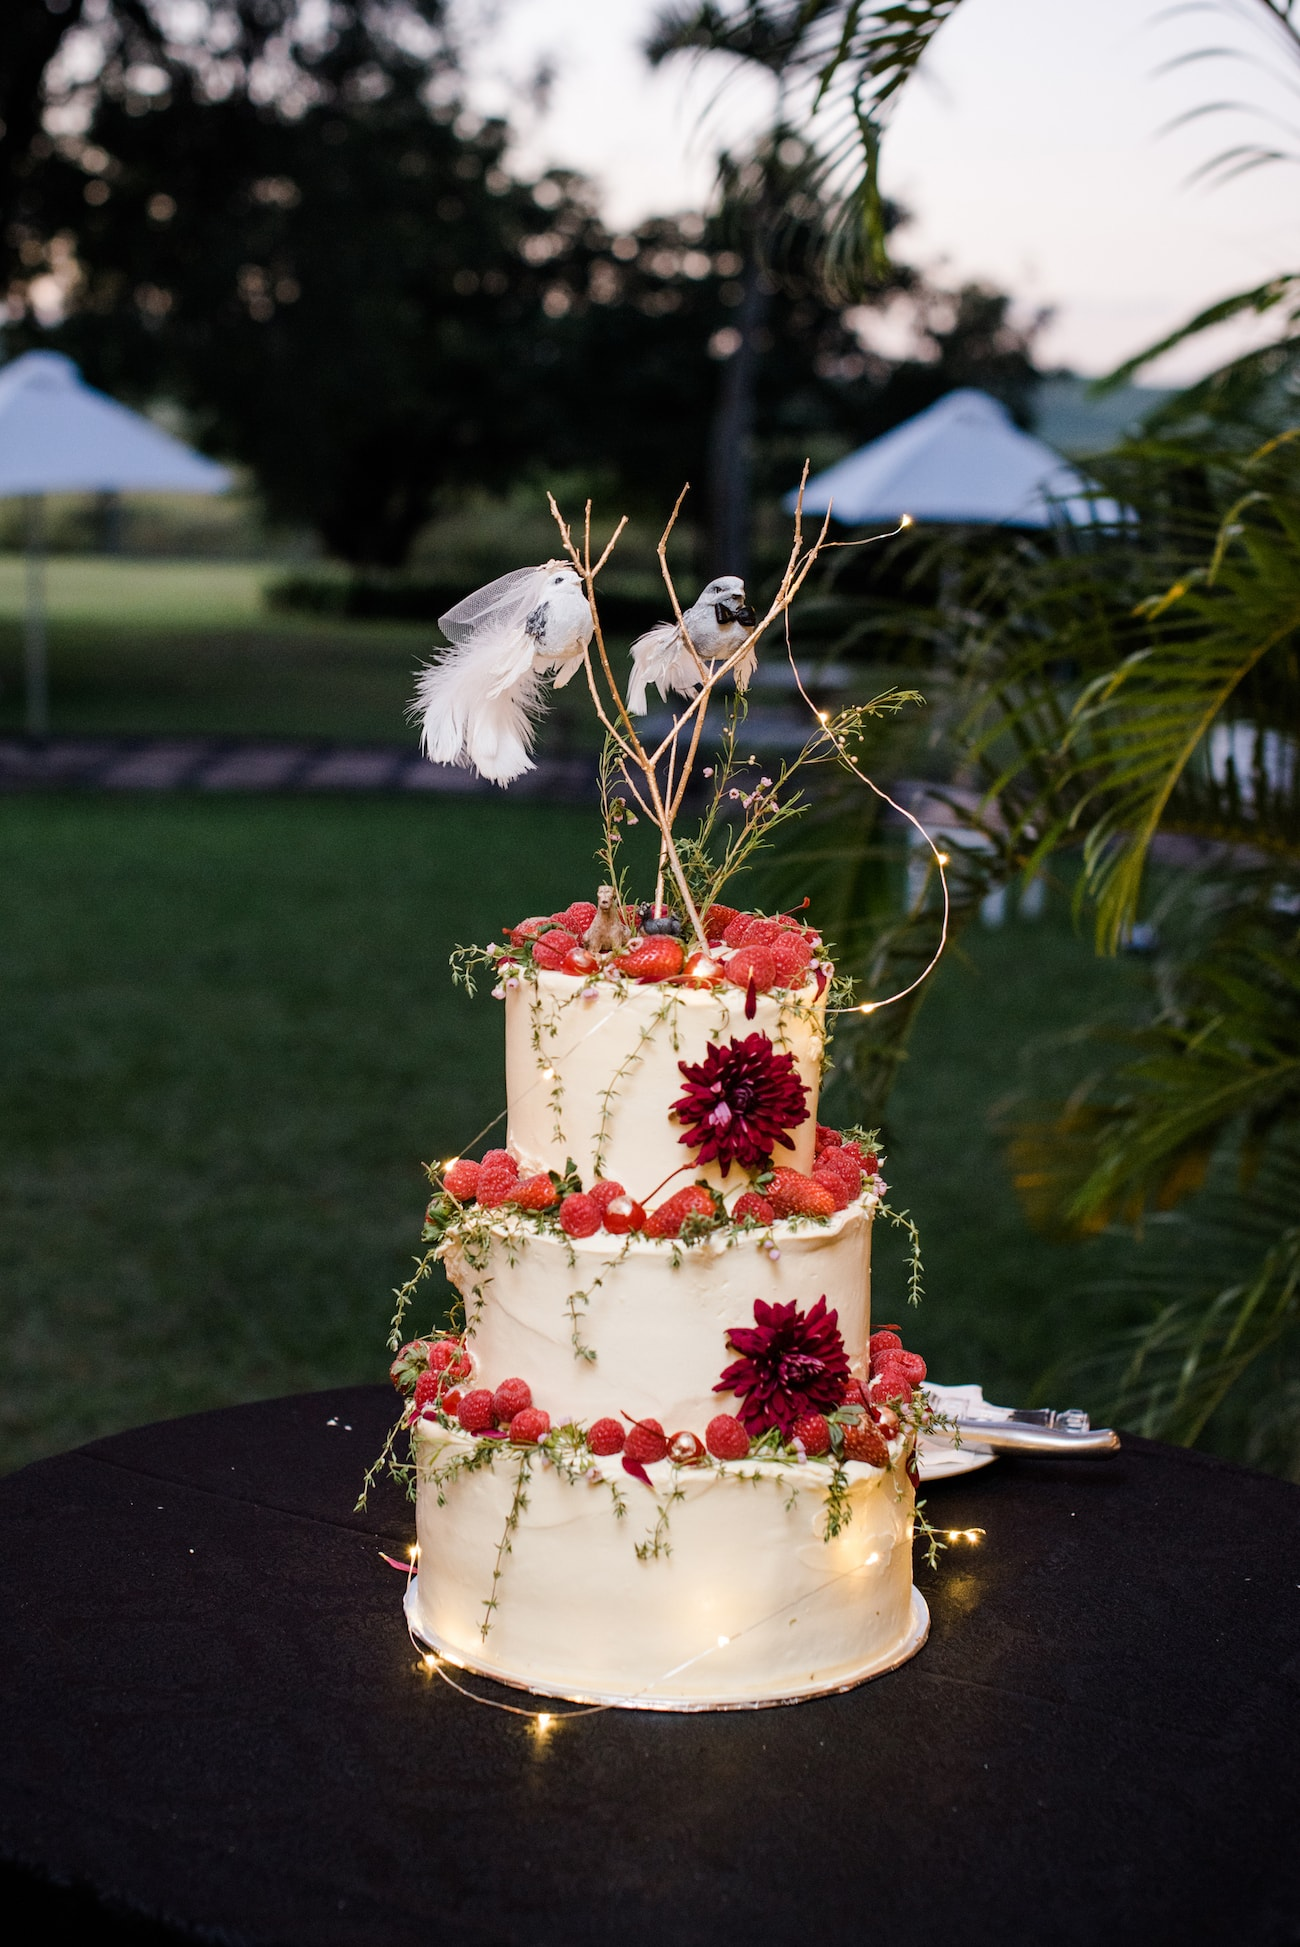 Magical Midsummer Night's Dream Inspired Wedding Cake | Image: Roxanne Davison